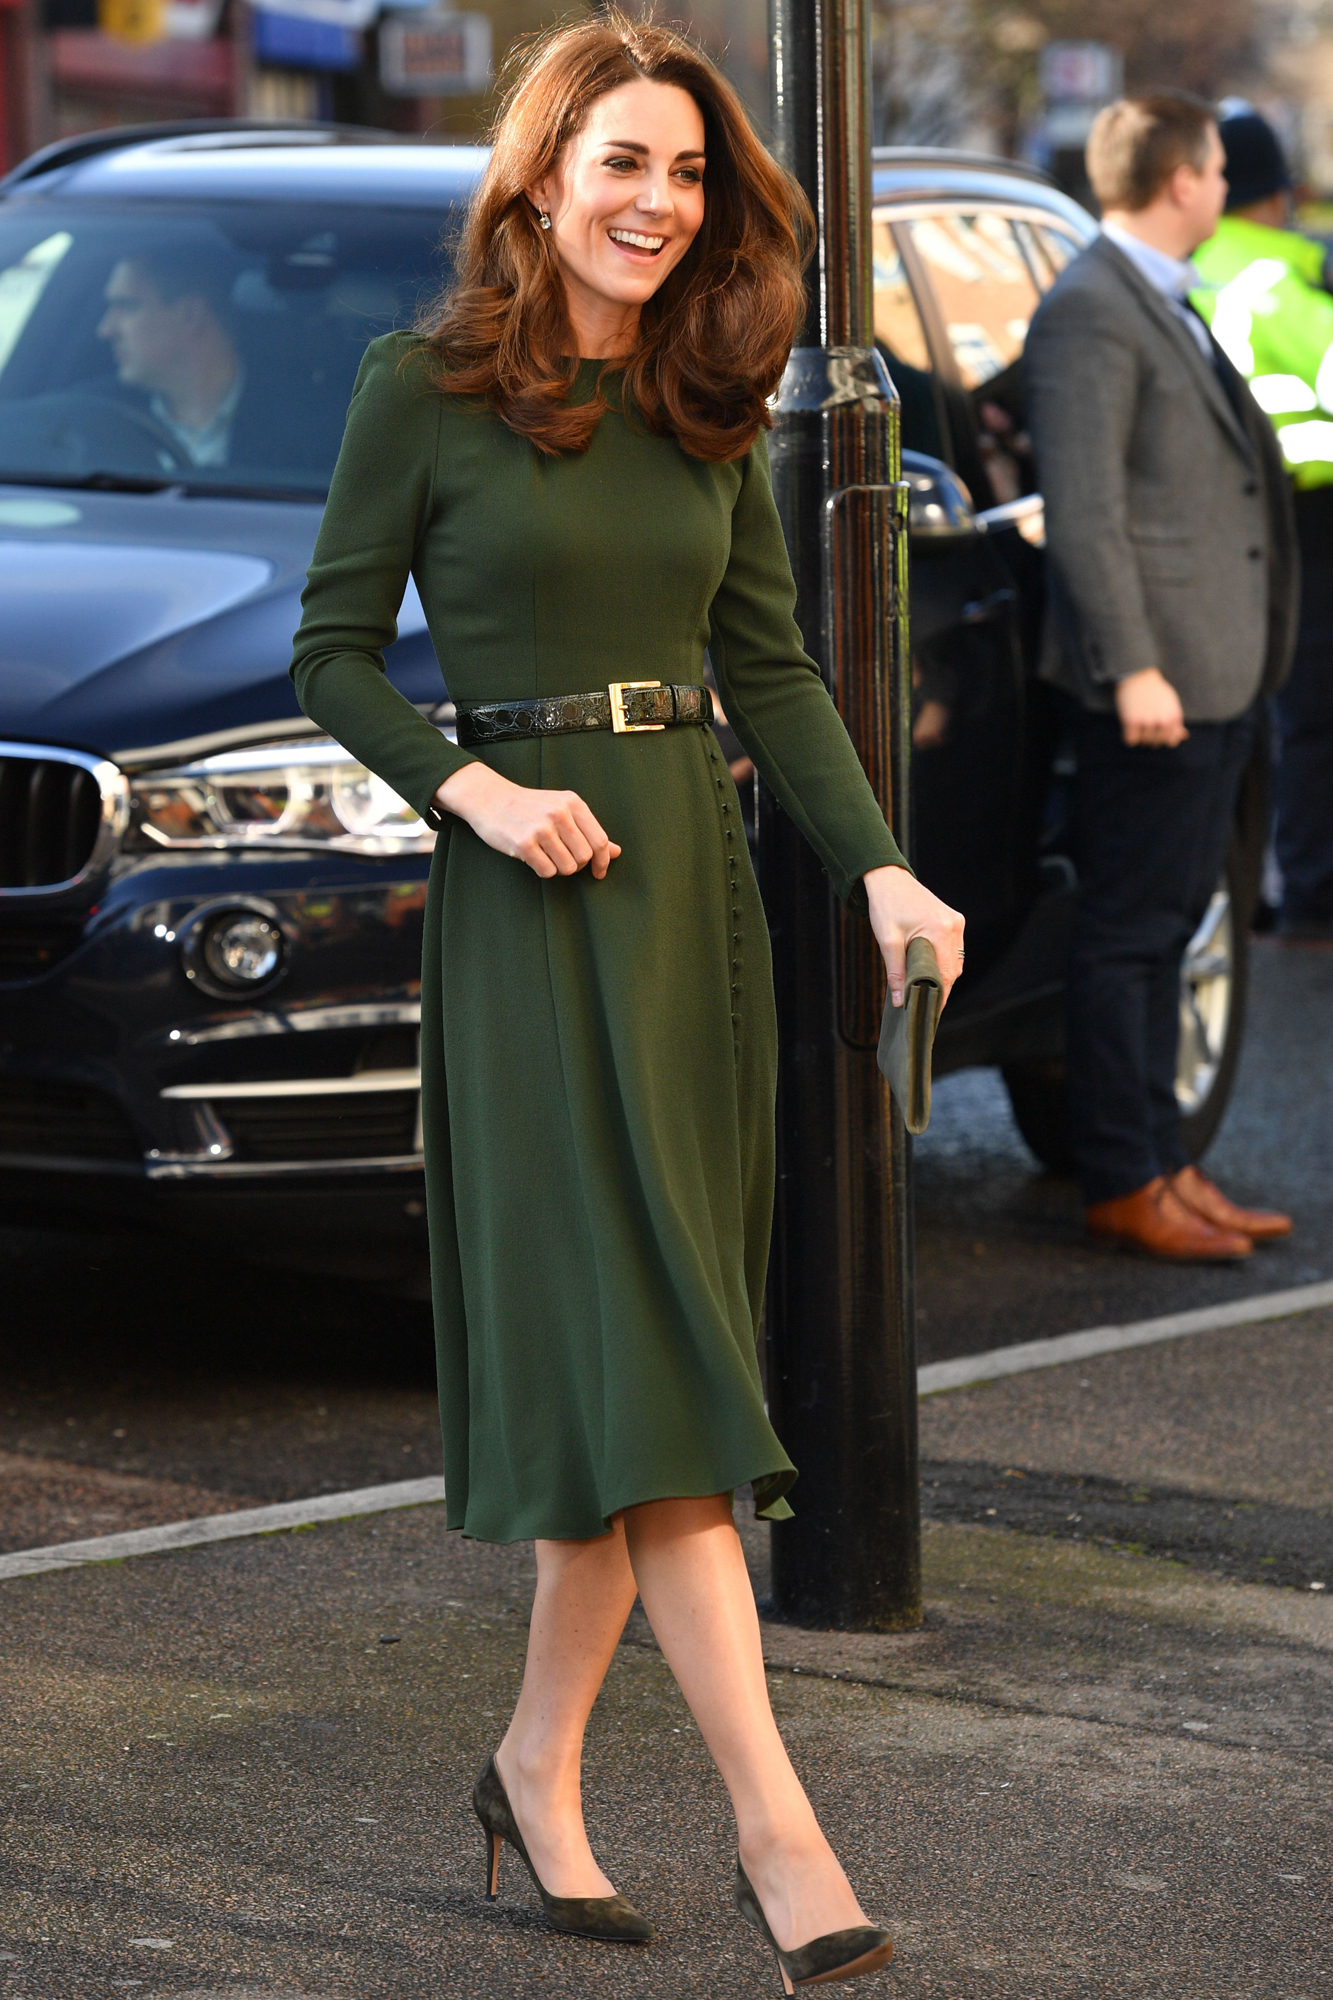 Catherine Duchess of Cambridge visits Family Action, Lewisham, London, UK - 22 Jan 2019